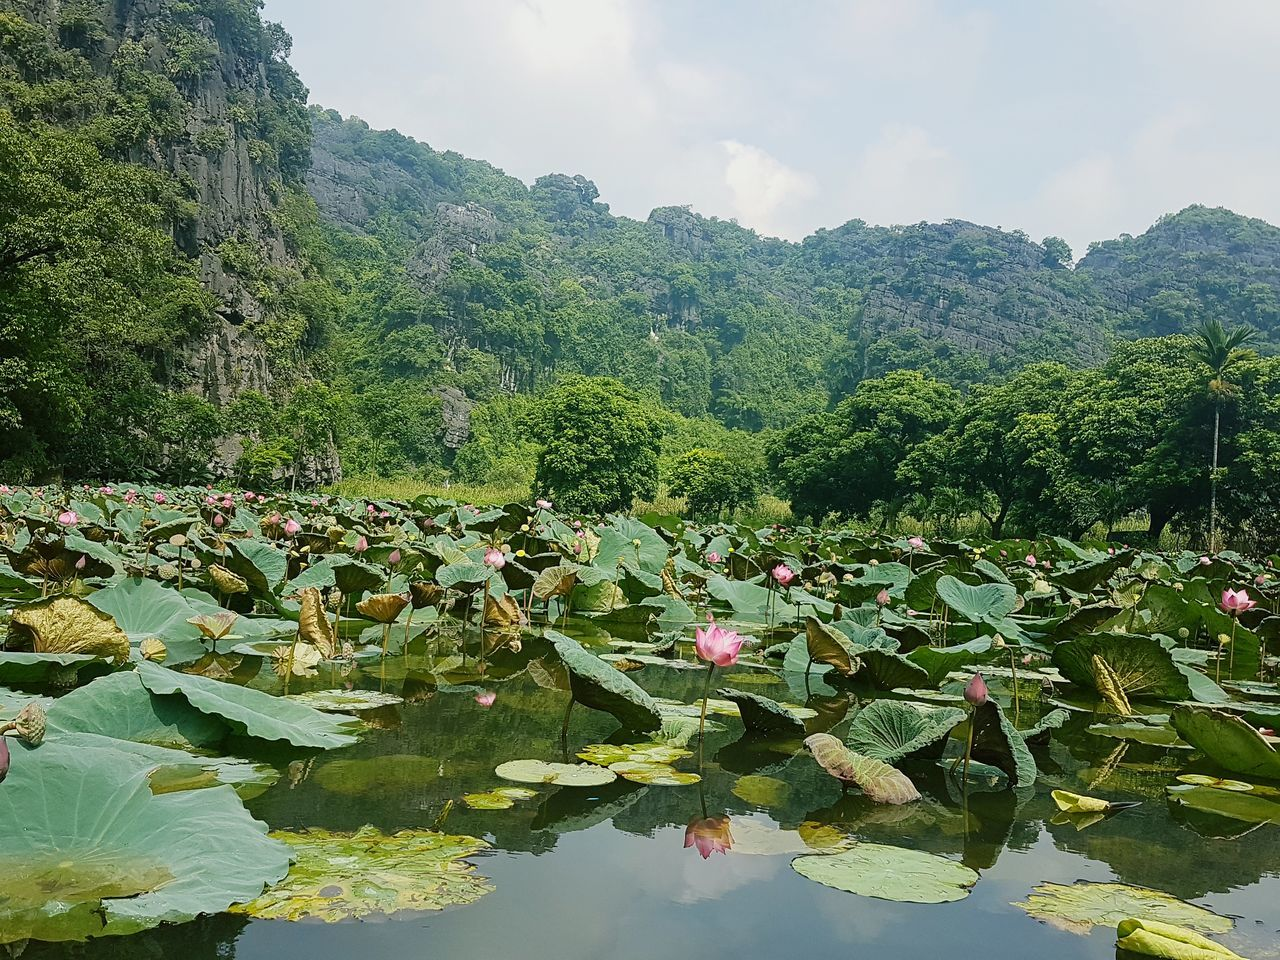 beauty in nature, nature, leaf, growth, water lily, lotus water lily, water, tranquility, green color, floating on water, lake, plant, day, lily pad, scenics, outdoors, tranquil scene, no people, flower, lush foliage, sky, lotus, freshness, fragility, mountain, tree